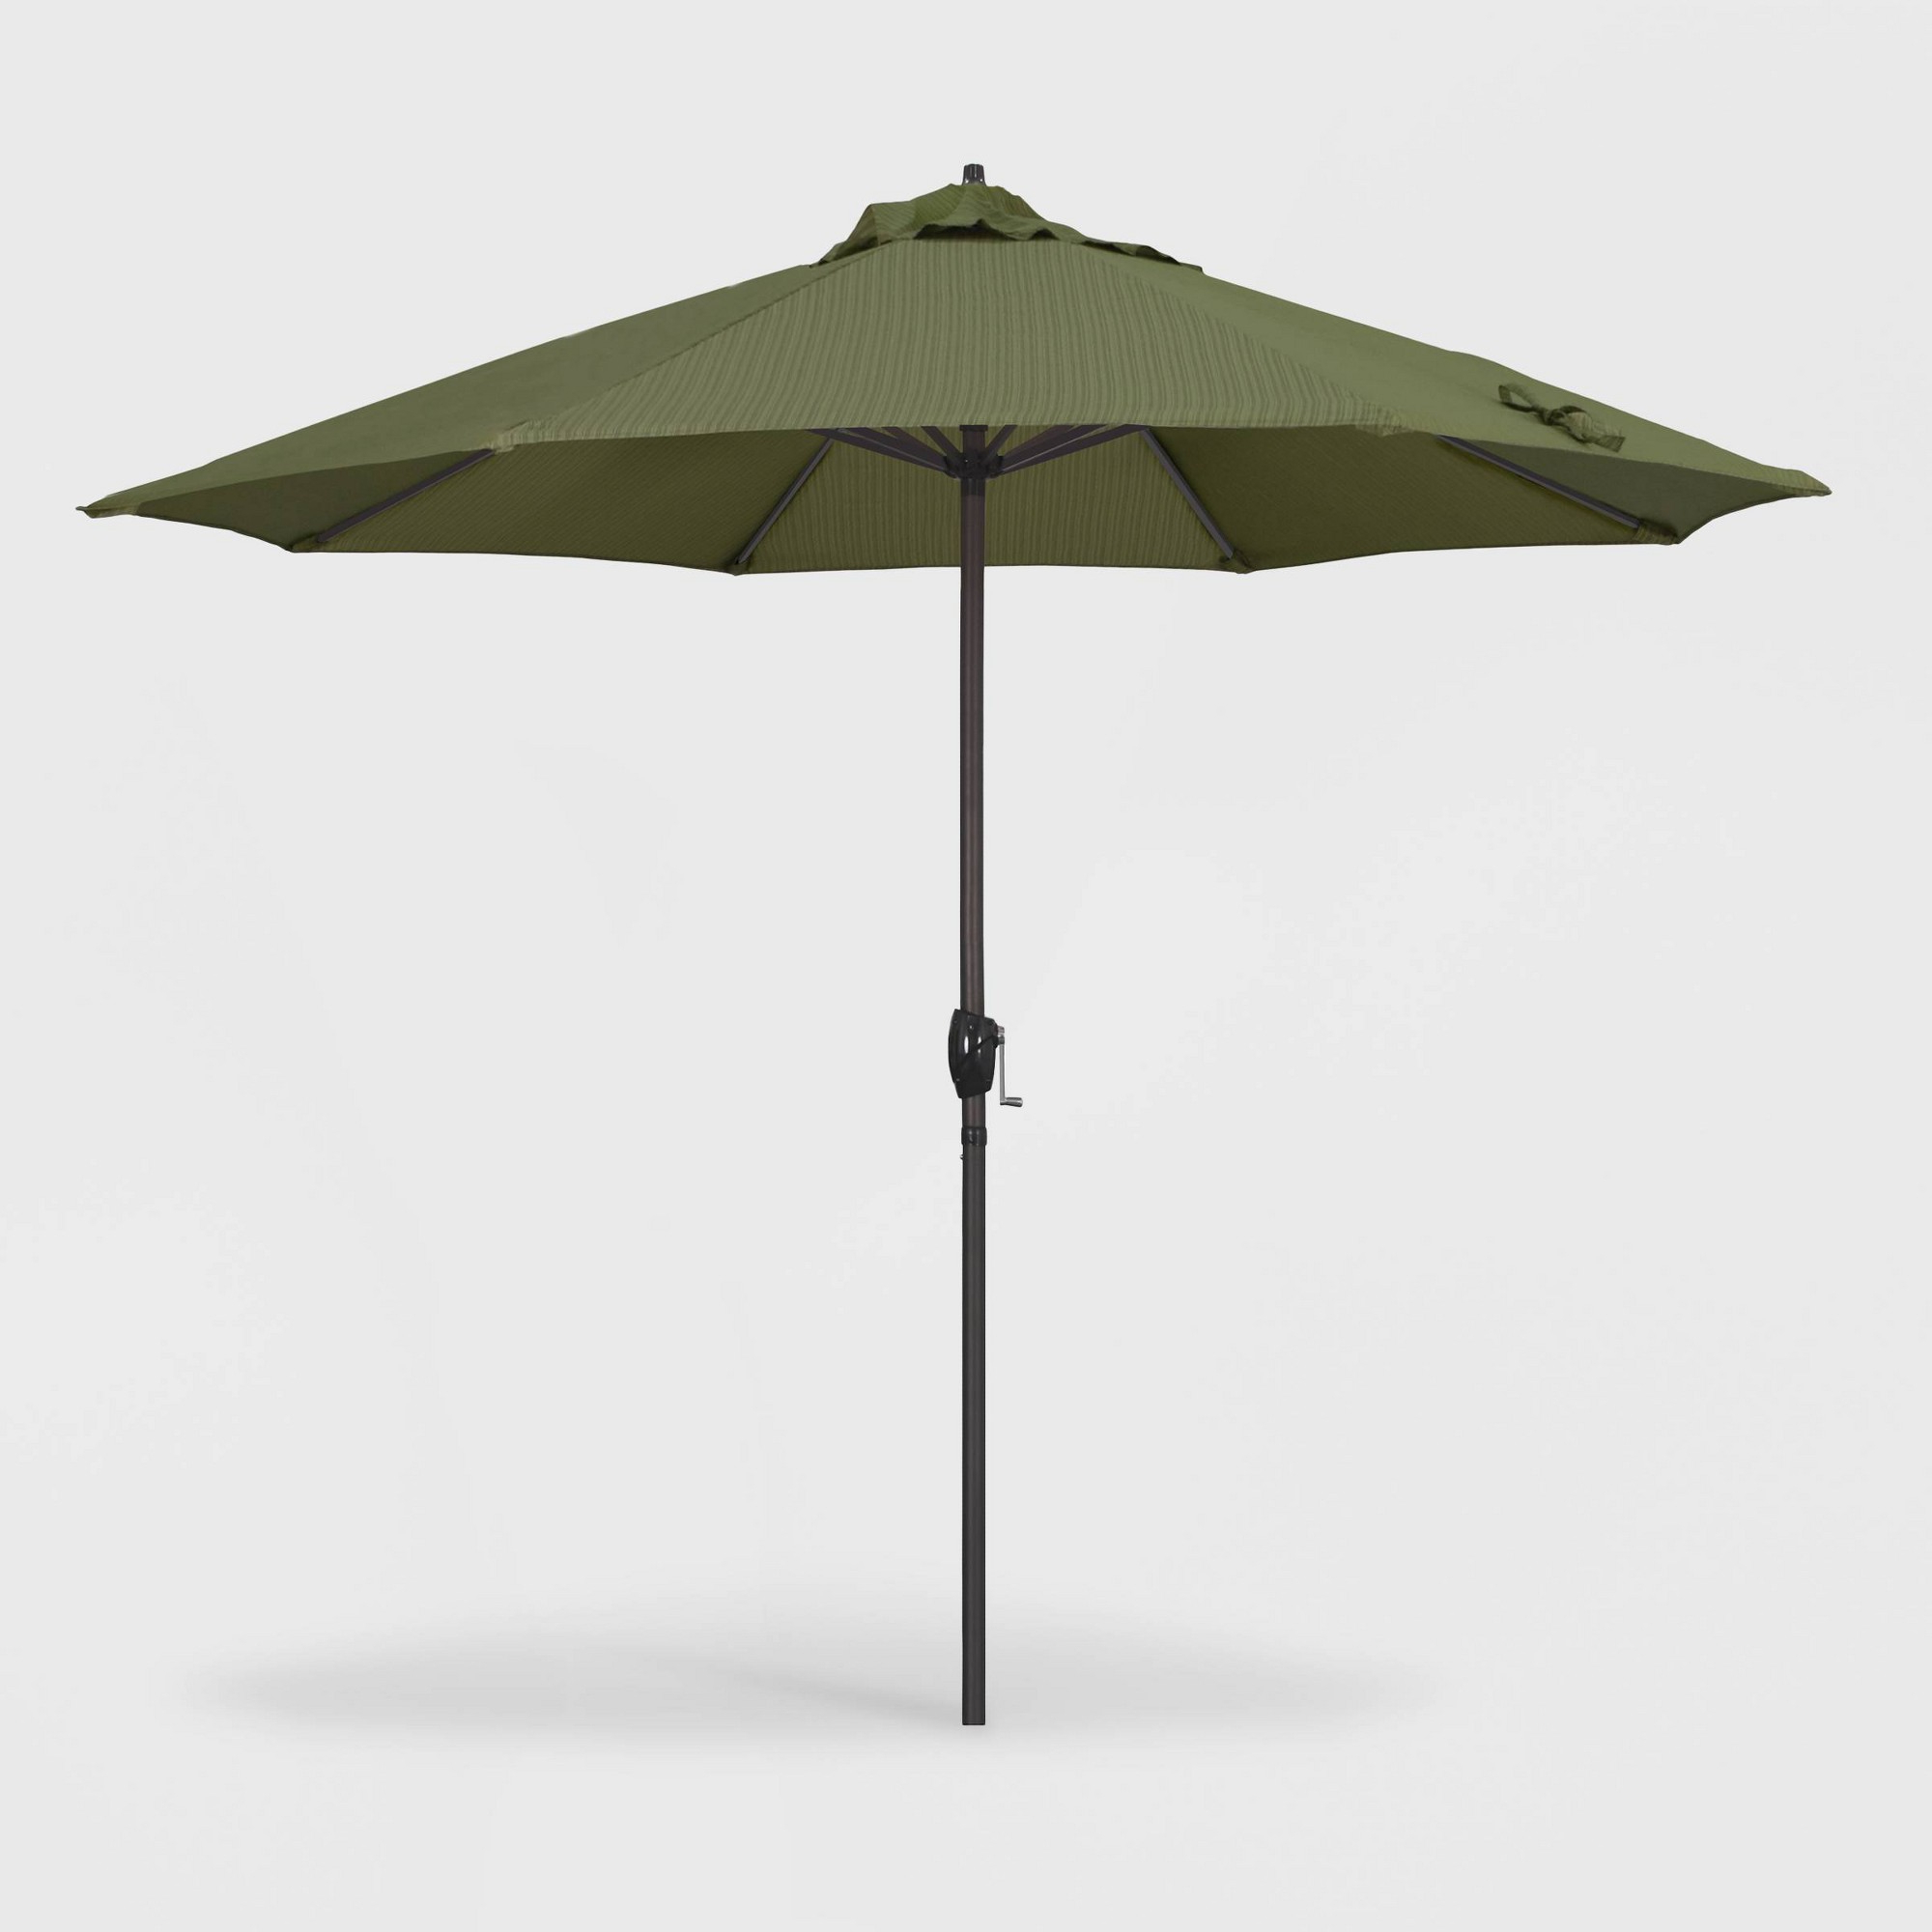 Latest 9' Casa Patio Umbrella Auto Tilt Crank Lift – Olefin Terrace Fern Throughout Crediton Market Umbrellas (View 4 of 20)